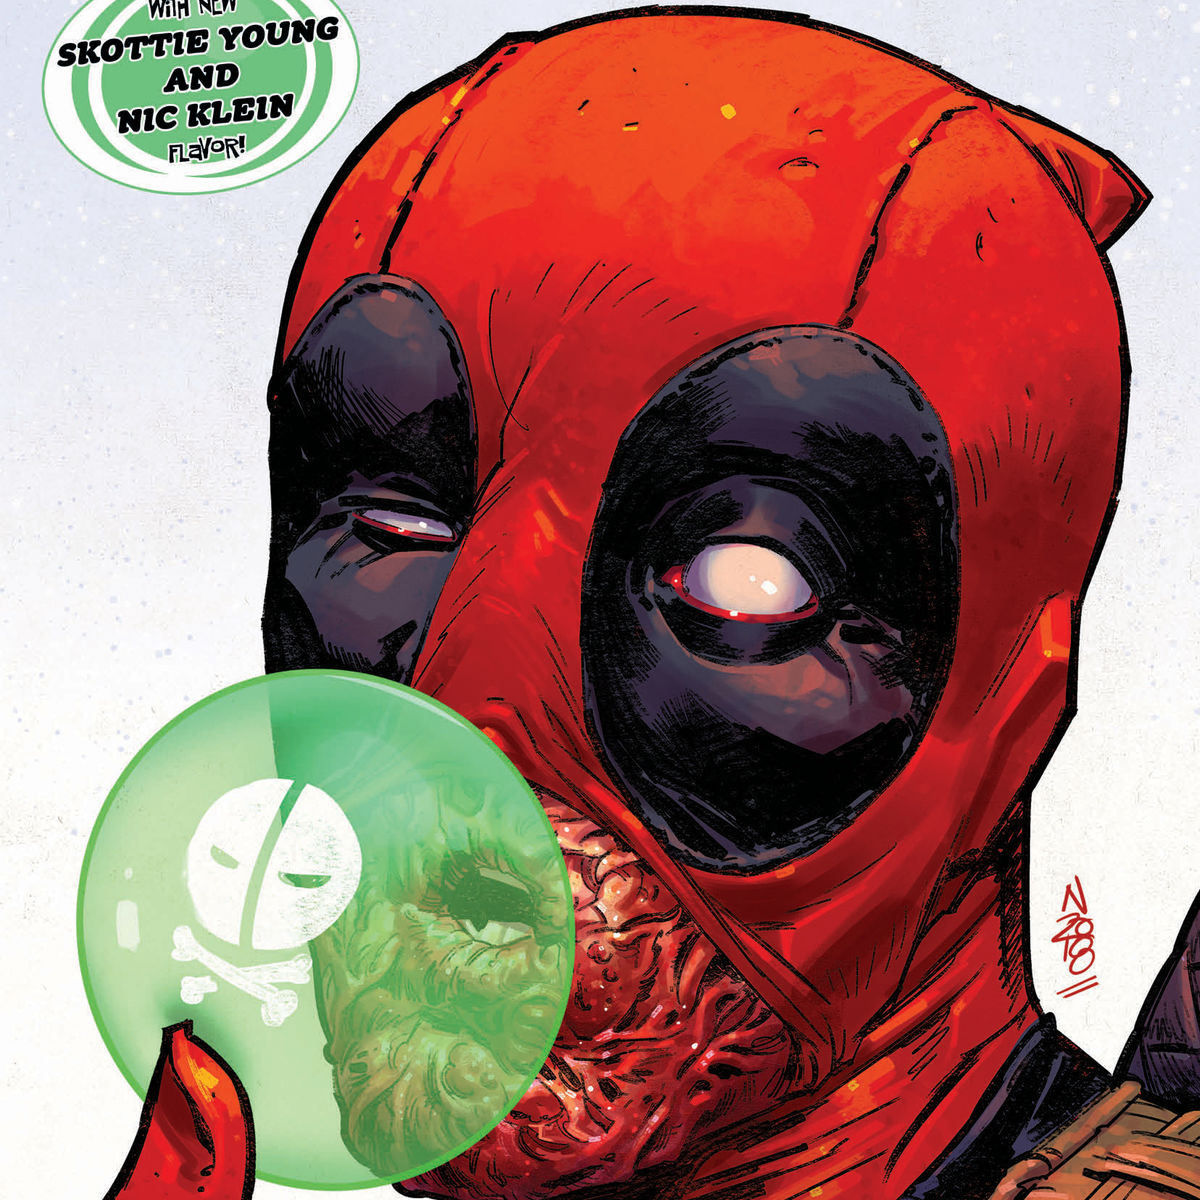 Marvel is shaking up Deadpool comics